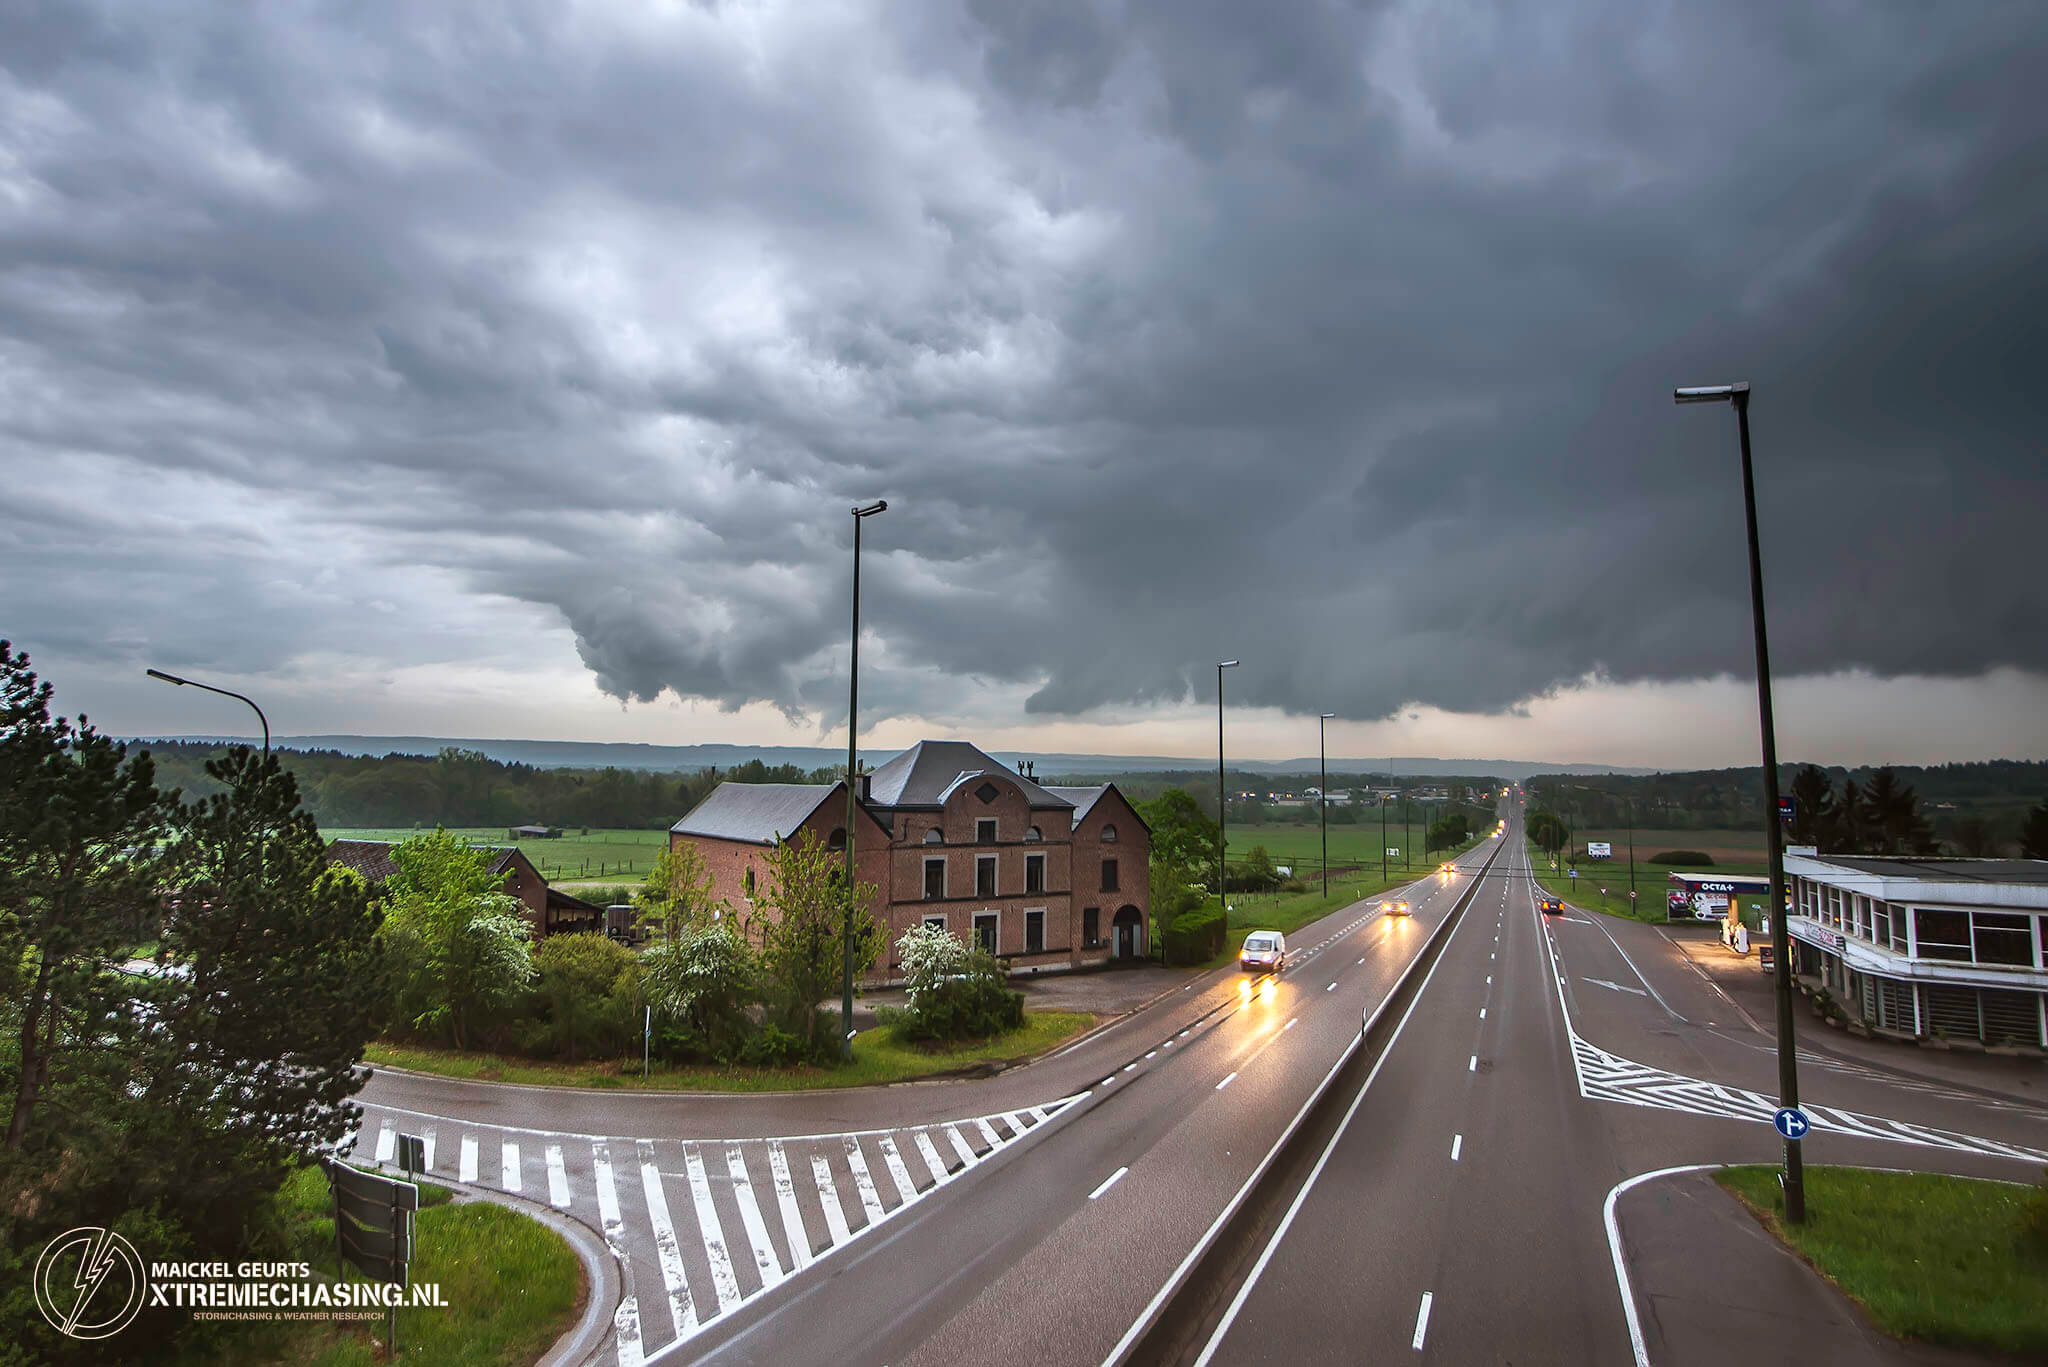 wallcloud Rochefort doorMaickel Geurts